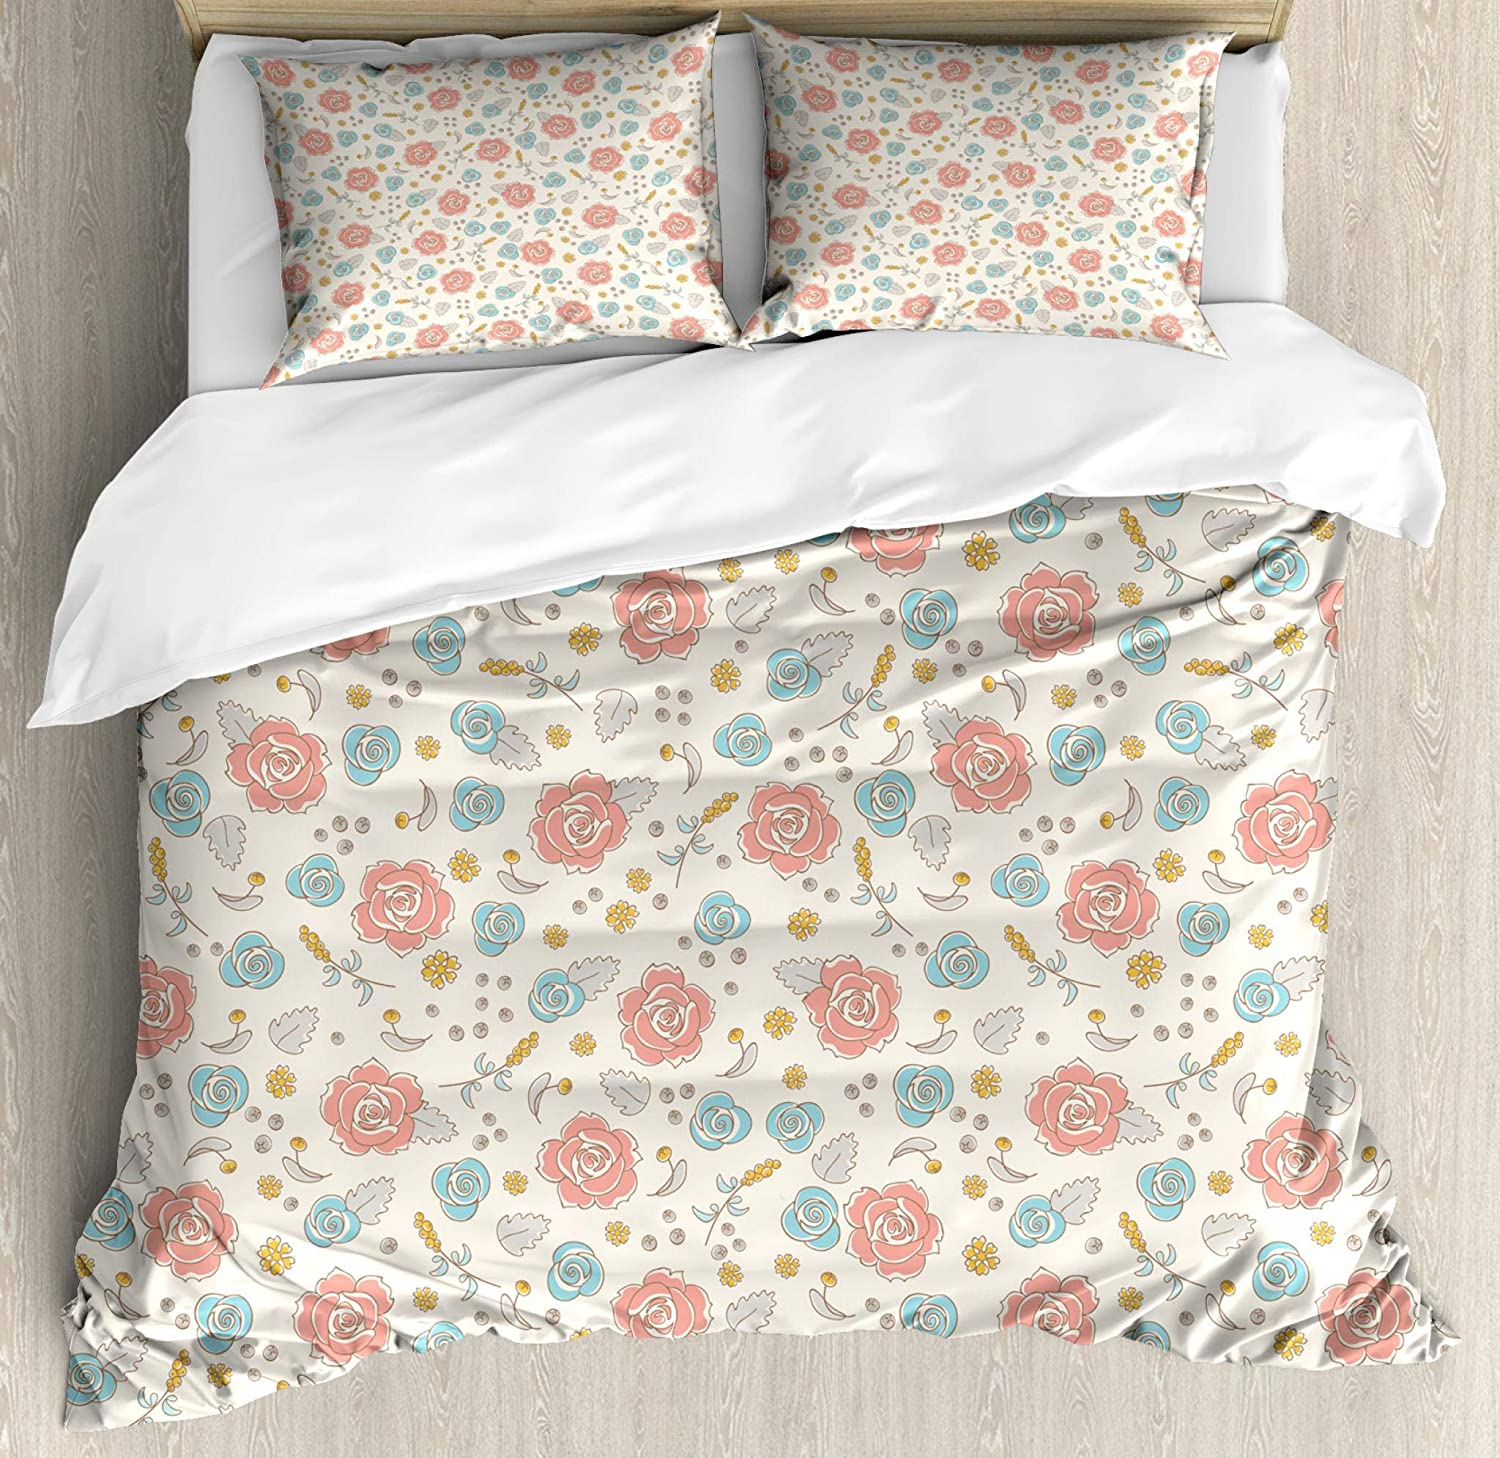 Lunarable Vintage Duvet Cover Set, Pink and Blue Roses with Wildflowers Spring Herbs and Flowers Botanical Pattern, Decorative 3 Piece Bedding Set with 2 Pillow Shams, Queen Size, Multicolor